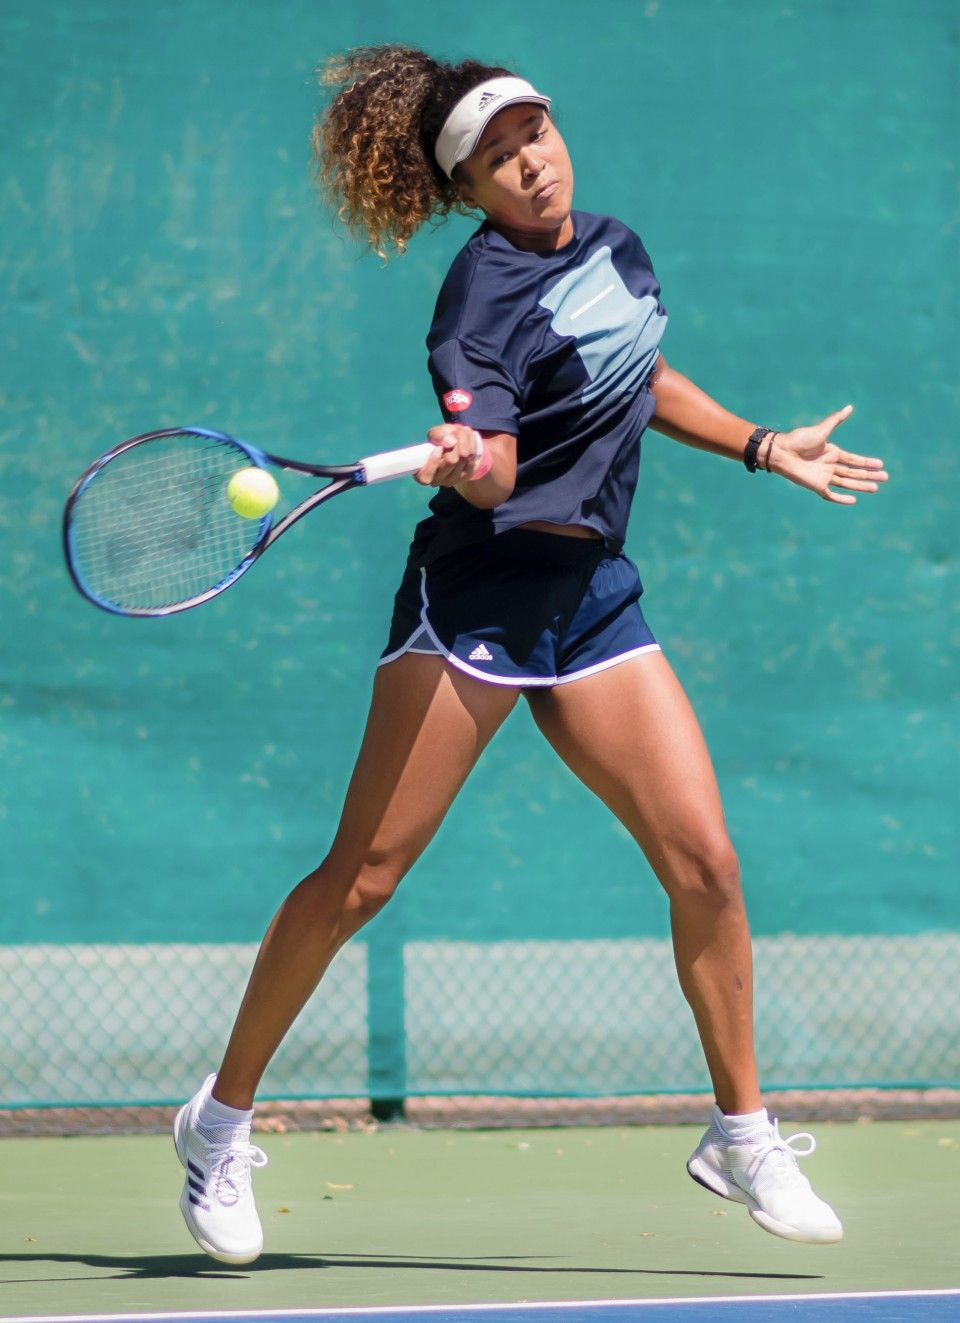 World Top Tennis Player Naomi Osaka Wins Laureus Breakthrough Prize Tennis Players Female Tennis Clothes Tennis Players